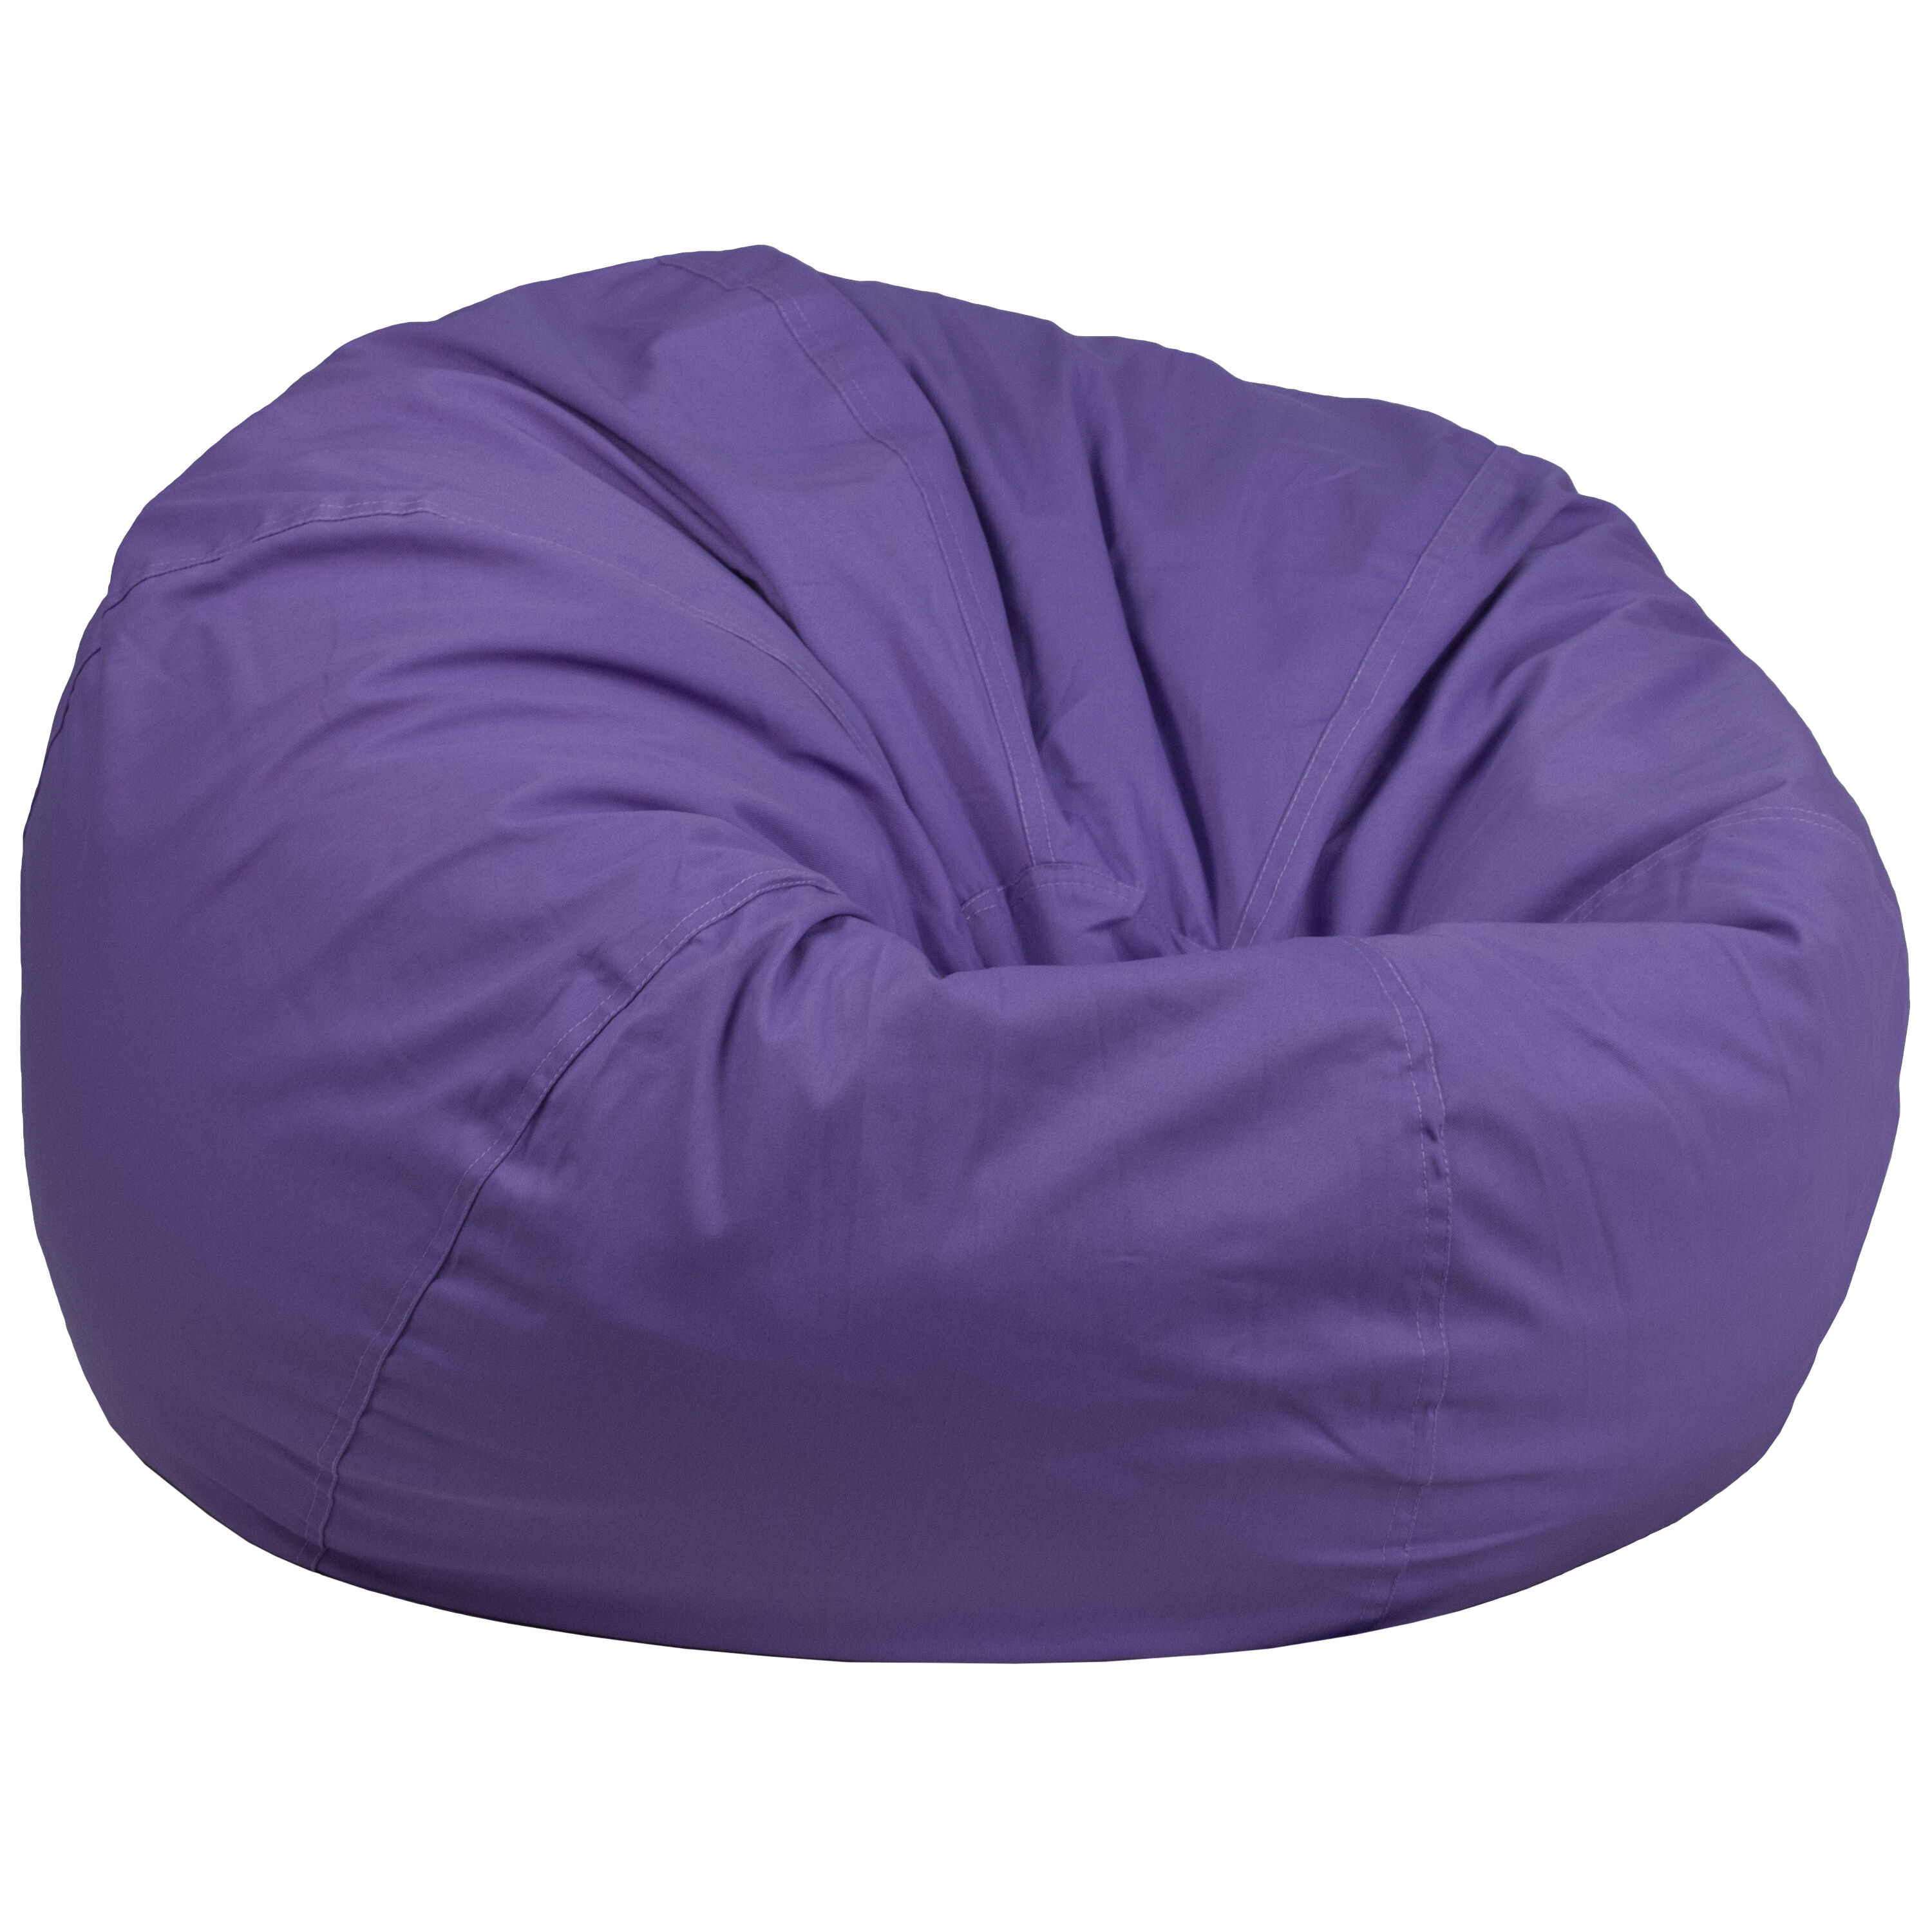 Oversized Solid Purple Bean Bag Chair